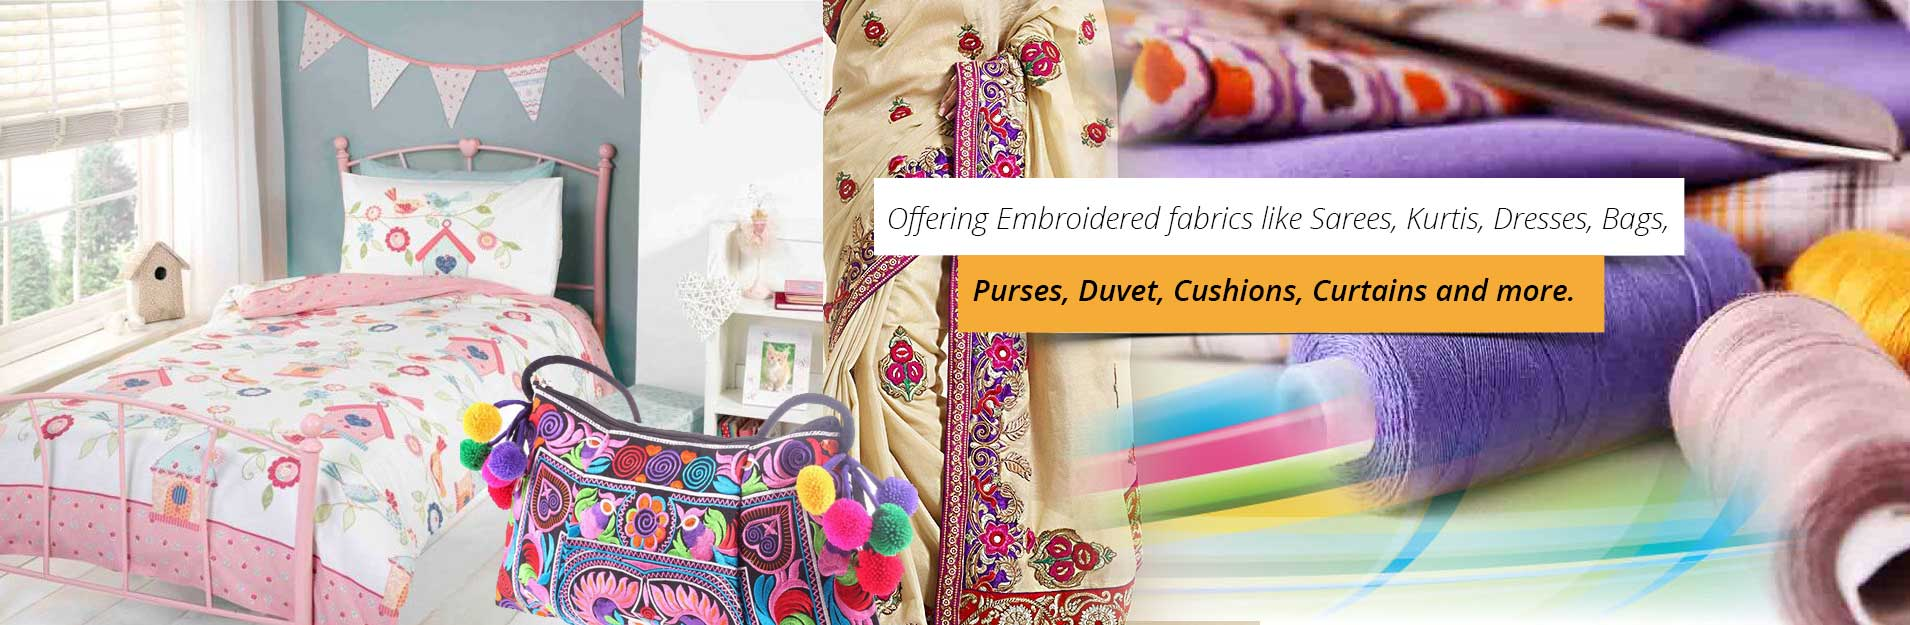 Embroidered Fabric Manufacturers and Exporters